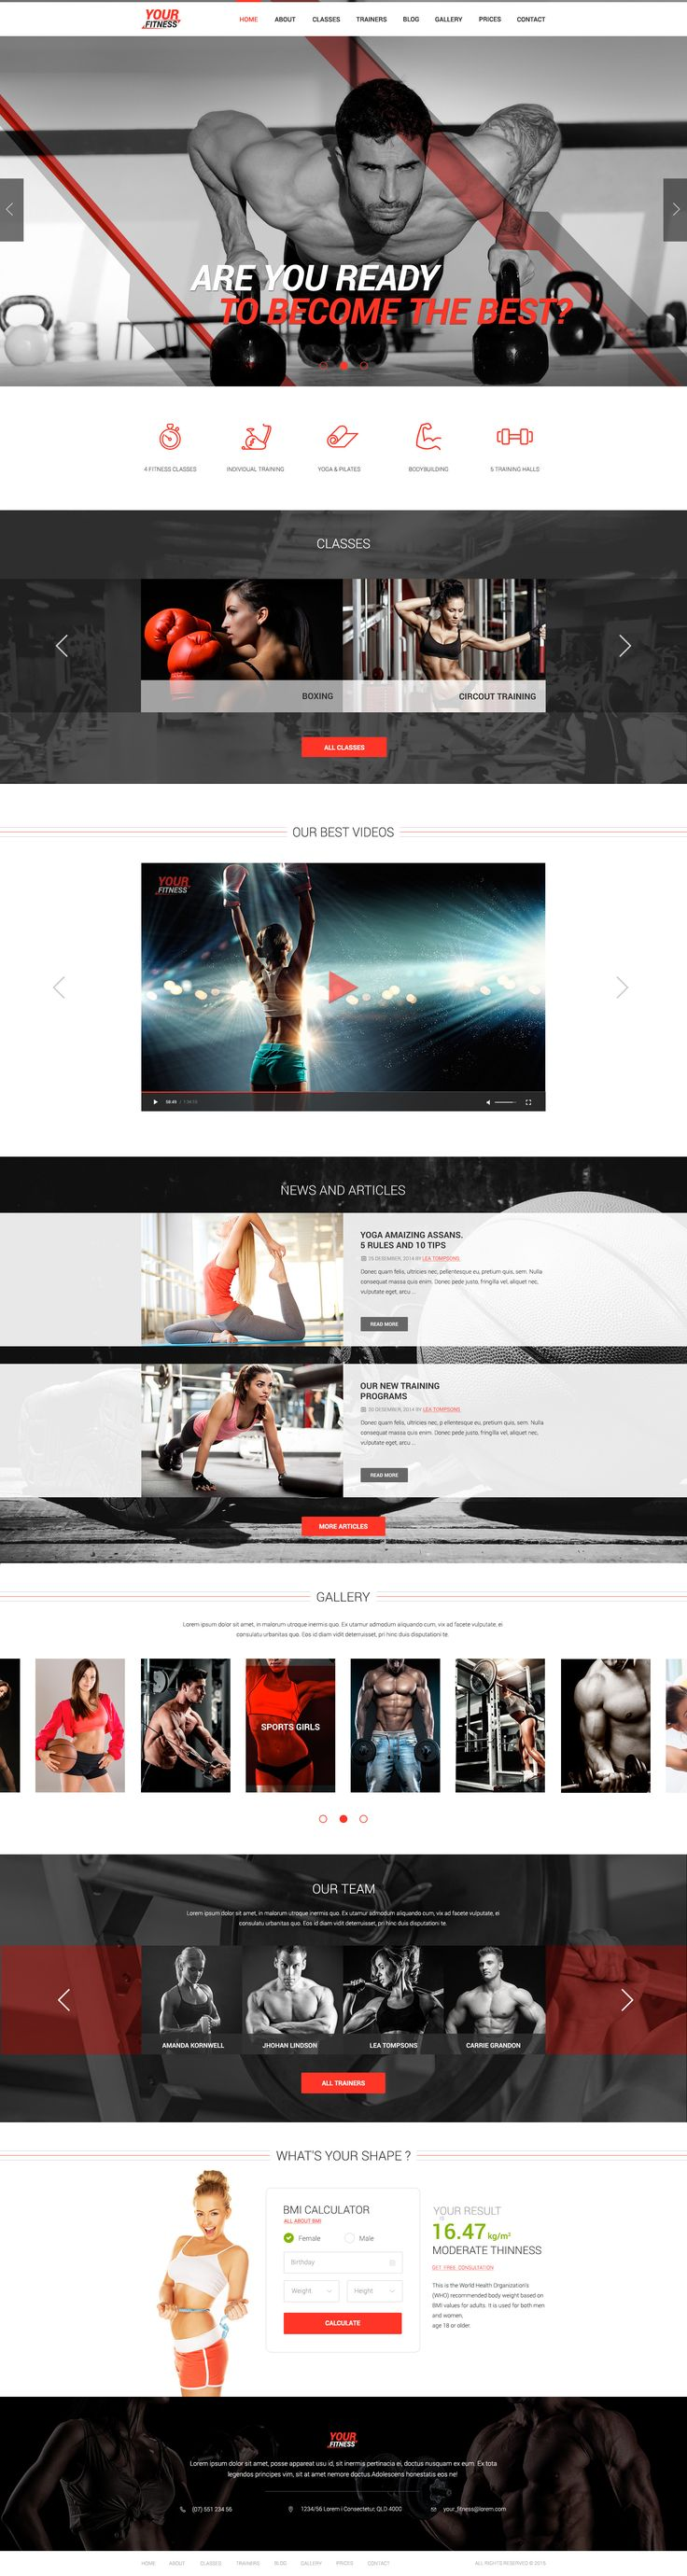 creative, modern and responsive theme designed mainly for Sport Clubs, Health Clubs, Gyms, Fitness Centers, Personal Trainers and other sport and health related clubs and it is suitable for any kind of sport activity websites.